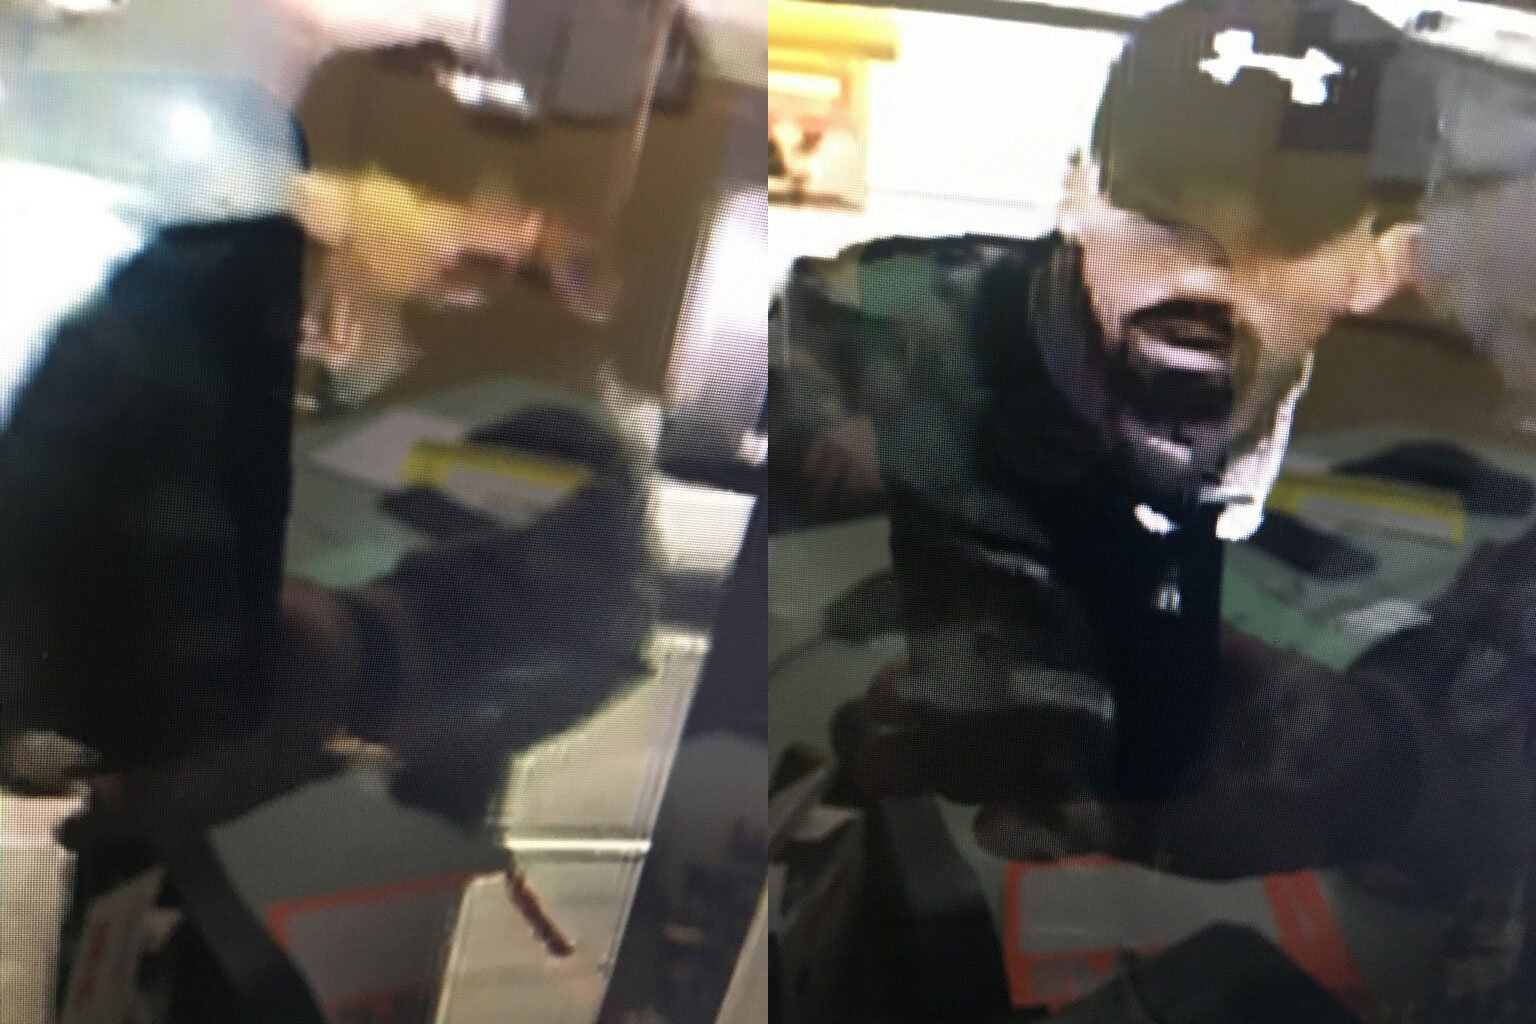 Deputies said security images helped them identify 28-year-old Cameron Phillip Goulet as the suspect in this case. (Marion Co. Sheriff's Office)